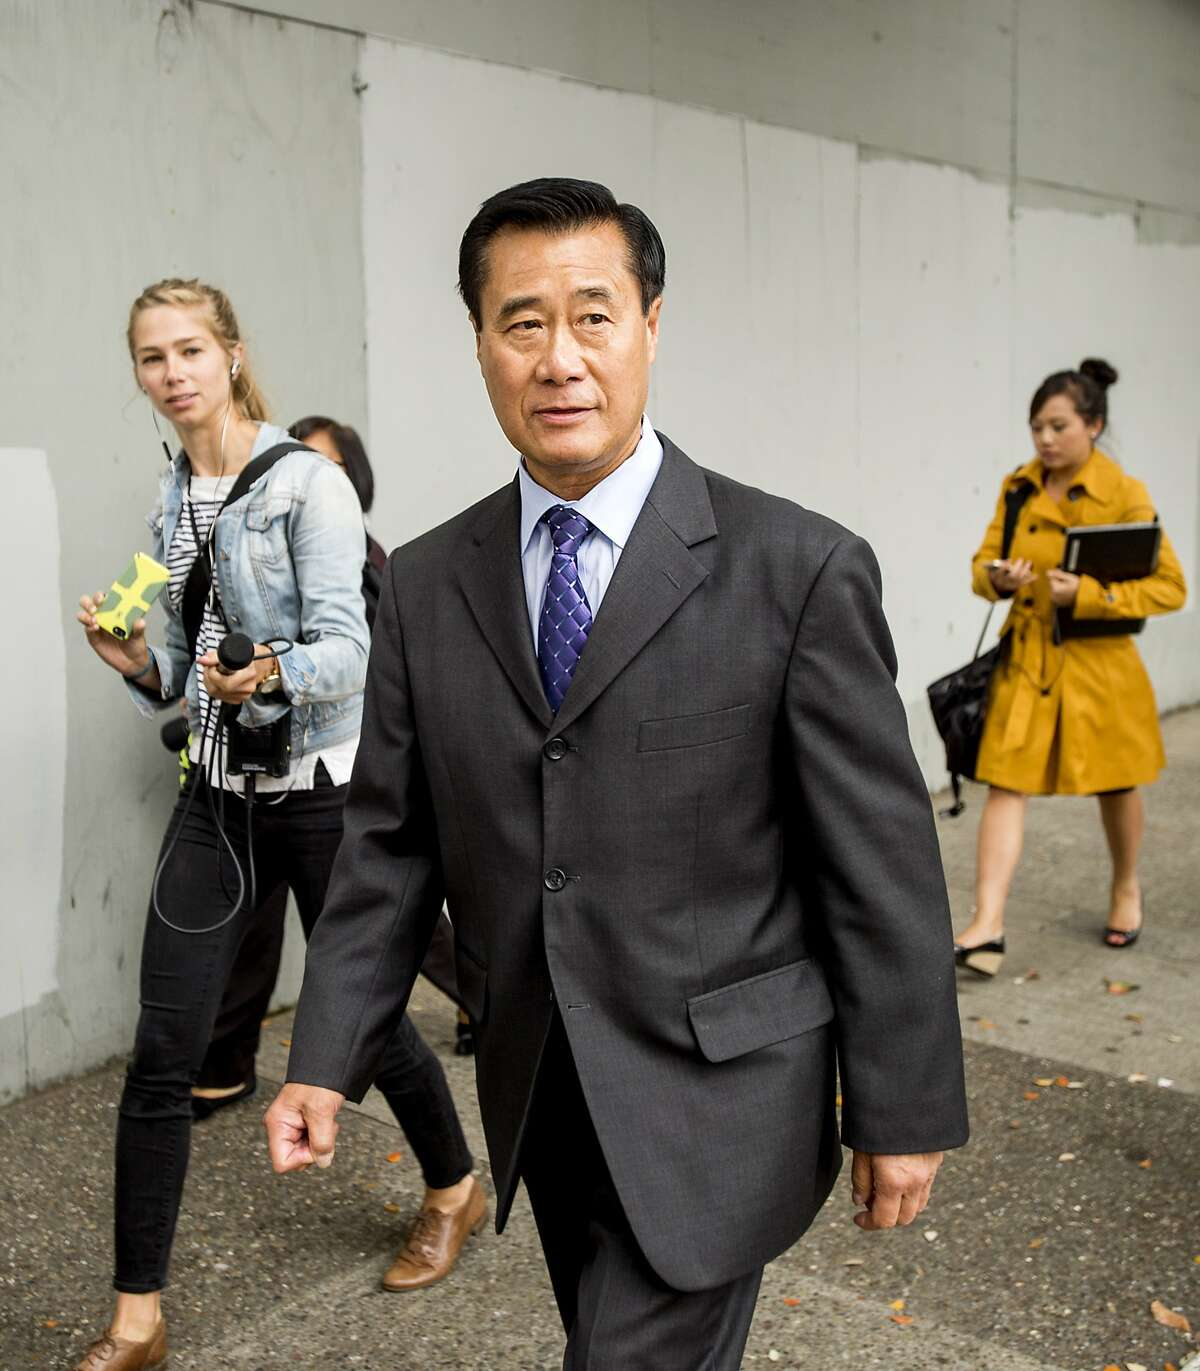 California state Sen. Leland Yee leaves federal court in San Francisco on Thursday, July 31, 2014.